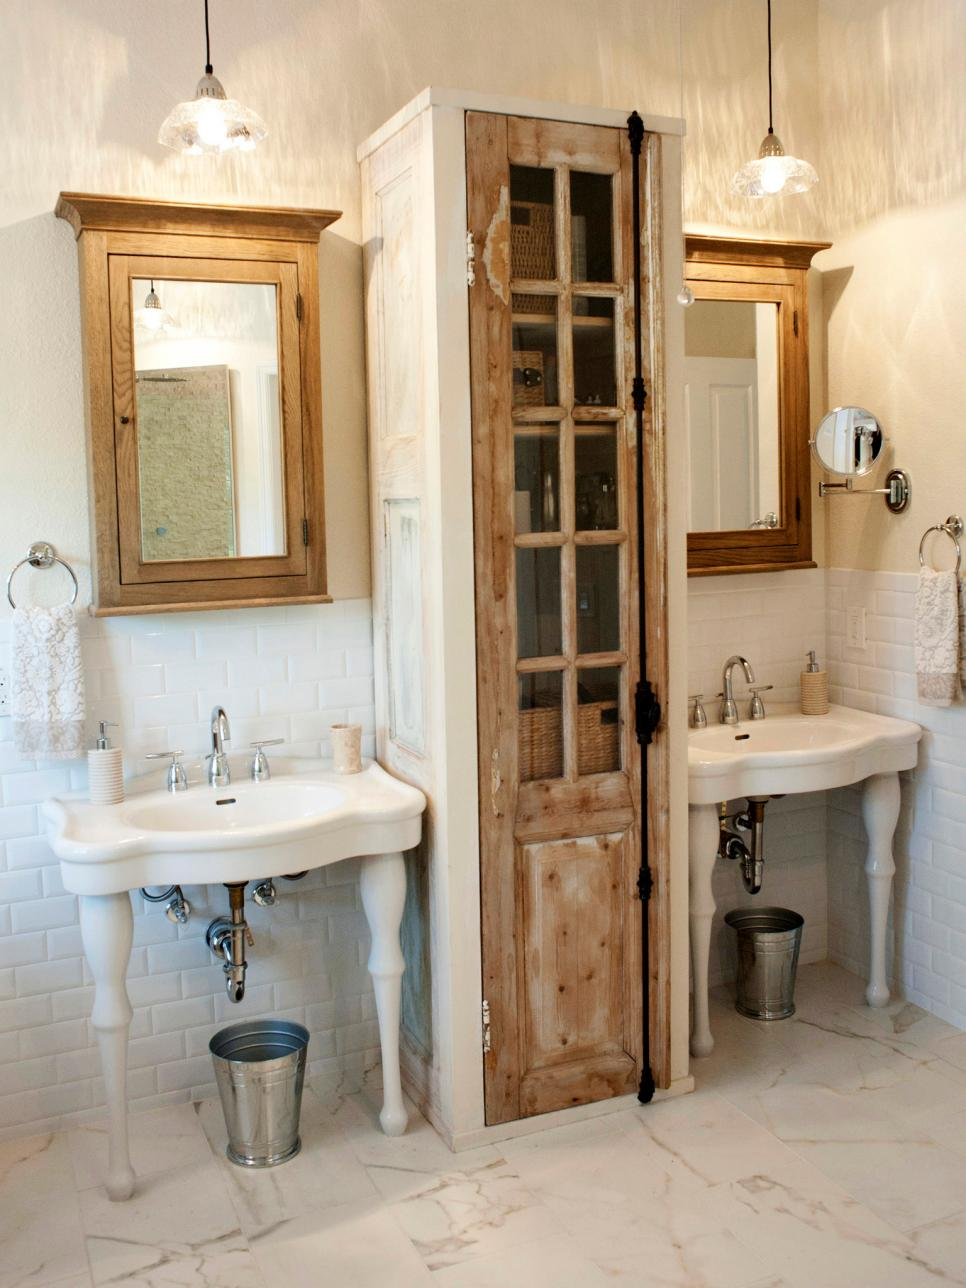 Storage Bathroom Ideas Brilliant 15 Smart Bath Storage Ideas  Hgtv Decorating Inspiration